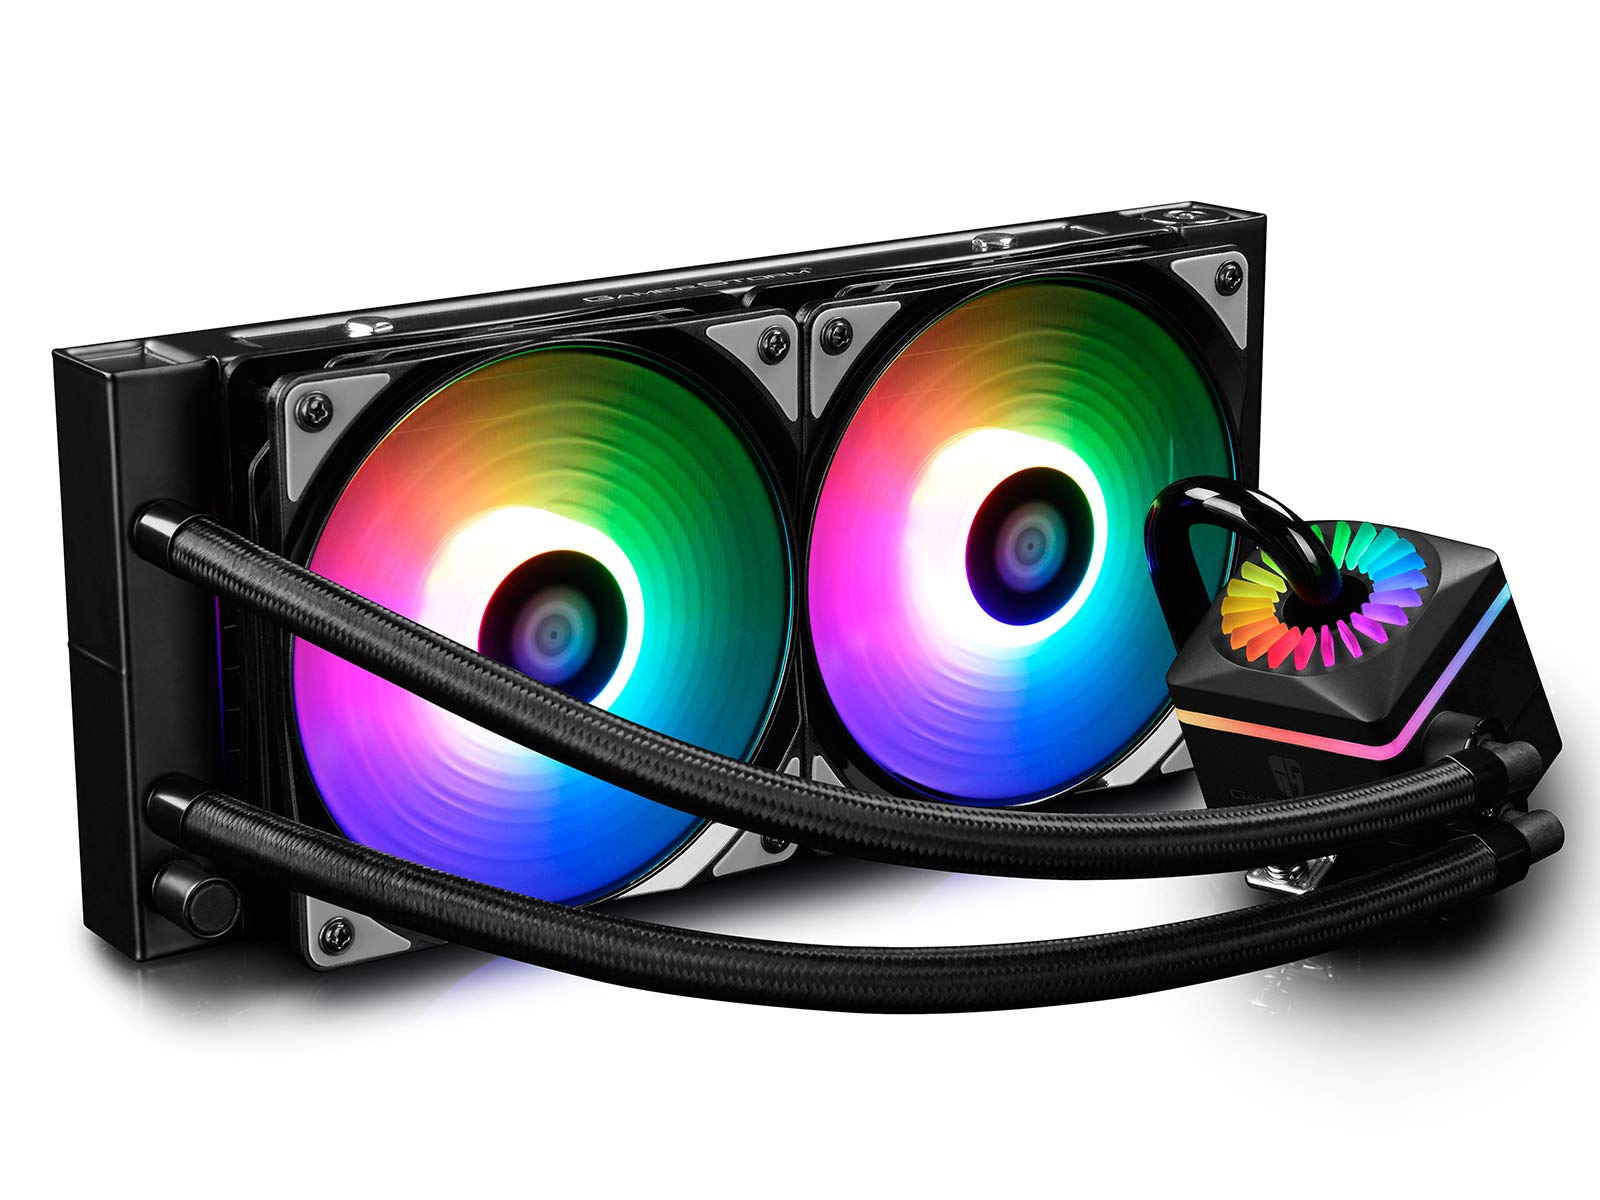 DEEPCOOL Captain 240PRO Addressable RGB AIO CPU Liquid Cooler, Cable Controller and 5V ADD RGB 3-Pin Motherboard Control, Intel 115X/2066 and AMD TR4/AM4 Compatible, 3-Year Warranty